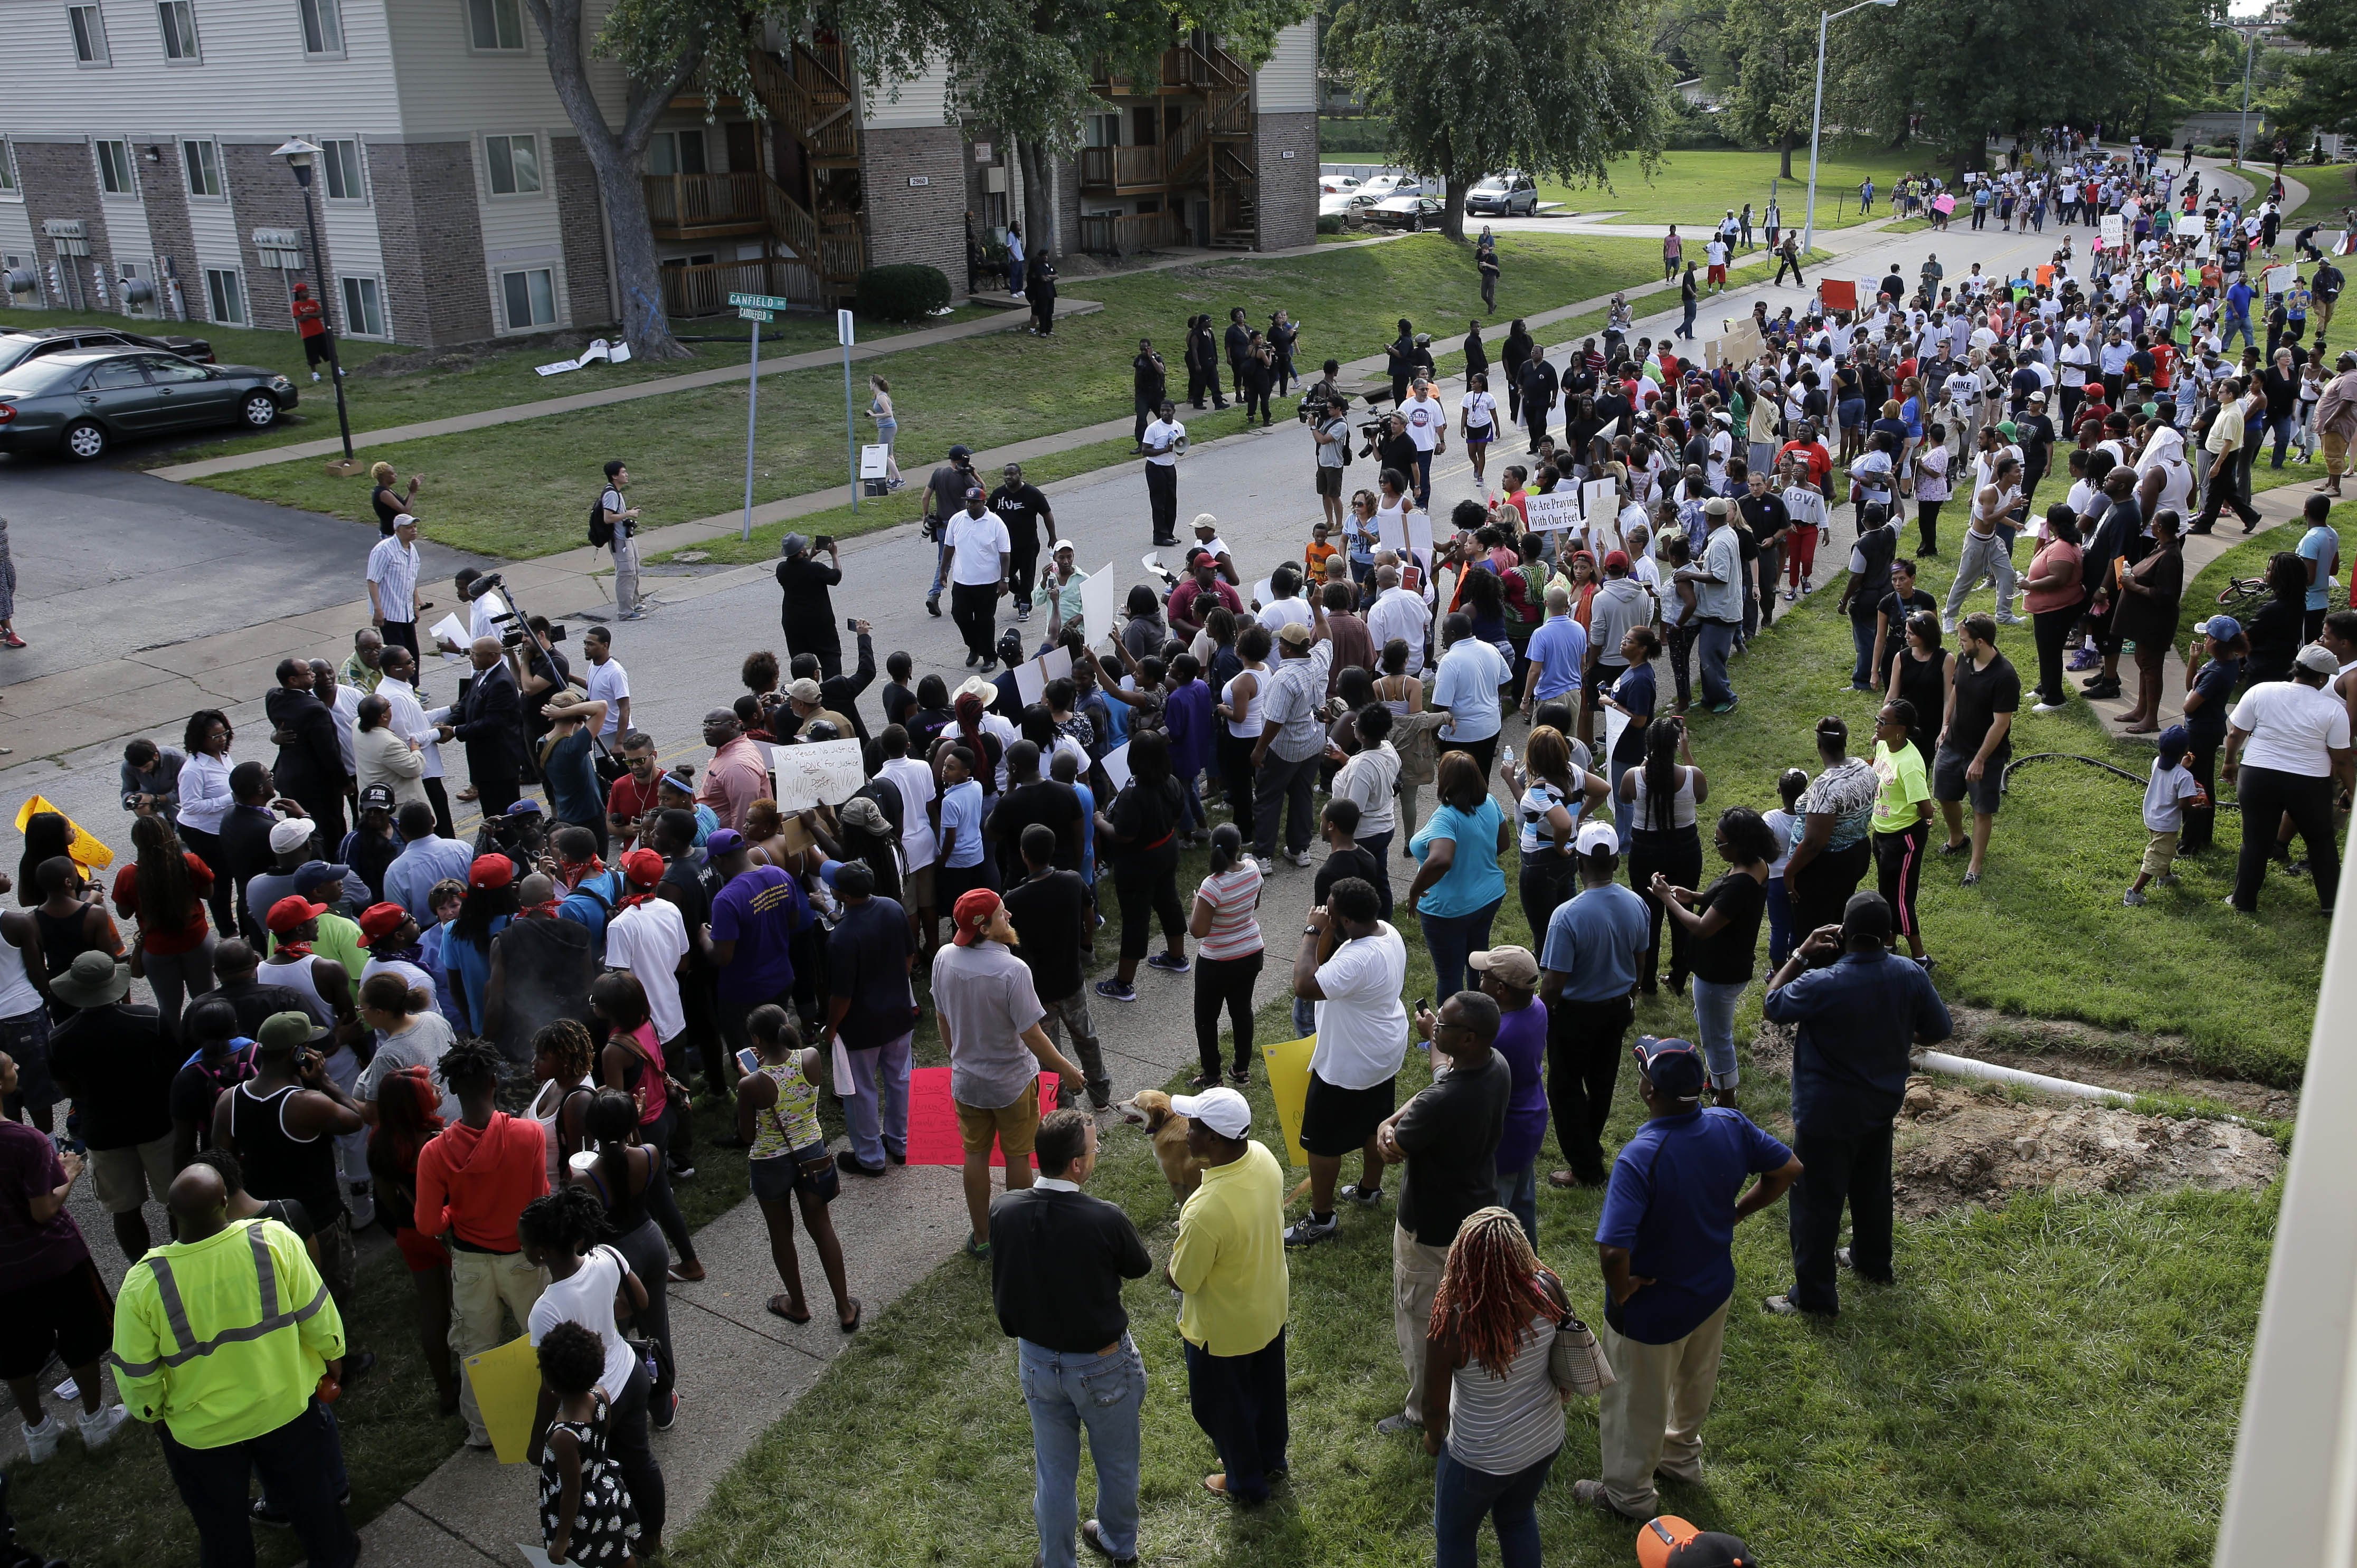 Thousands of demonstrators peacefully march to the spot where Michael Brown was shot and killed by police in Ferguson, Mo. on Aug. 14, 2014.